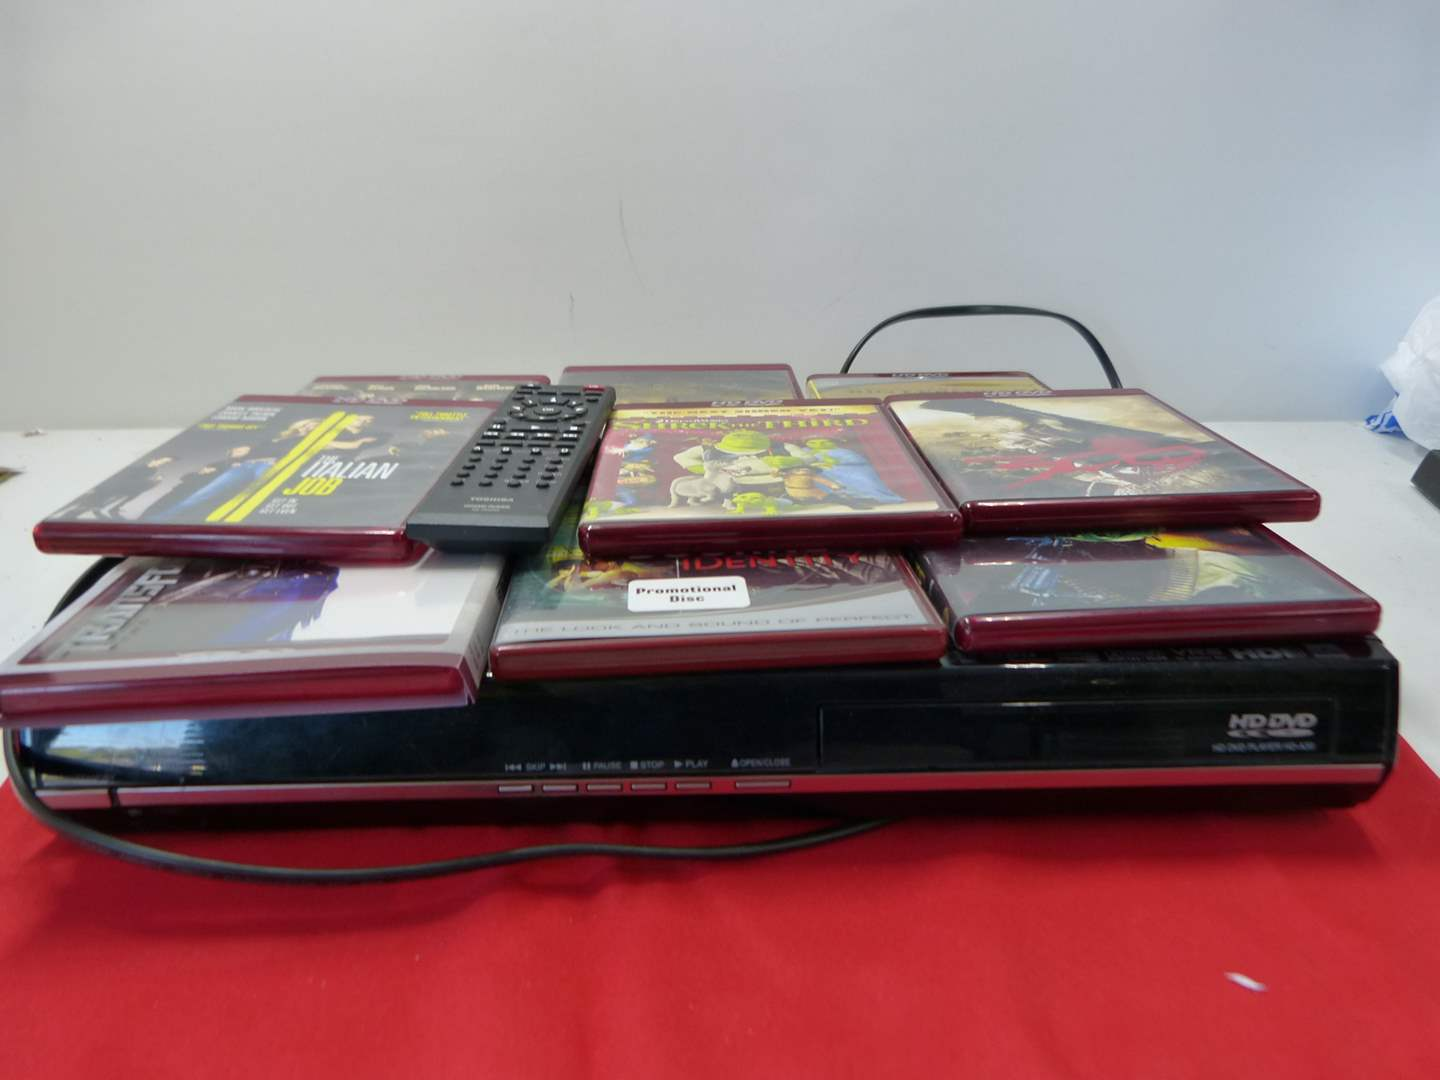 Lot # 223  Specialty HD-DVD player with DVD's & remote (needs batteries and battery holder) read below